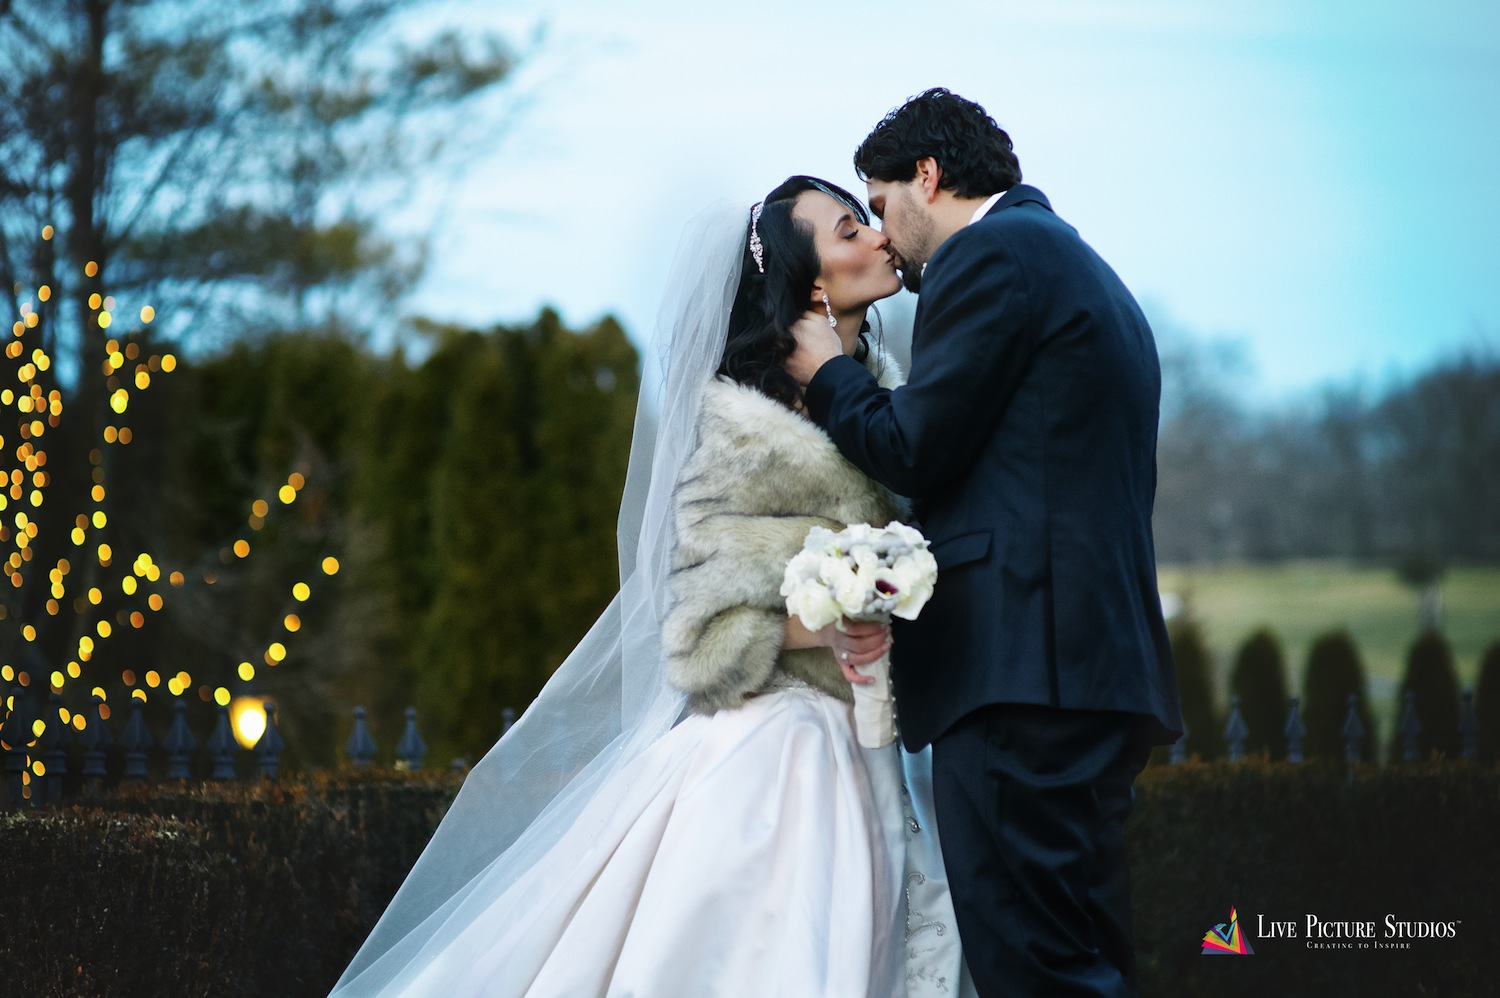 dolly-and-jordan-kissing-outside-venue-nj-wedding-photography